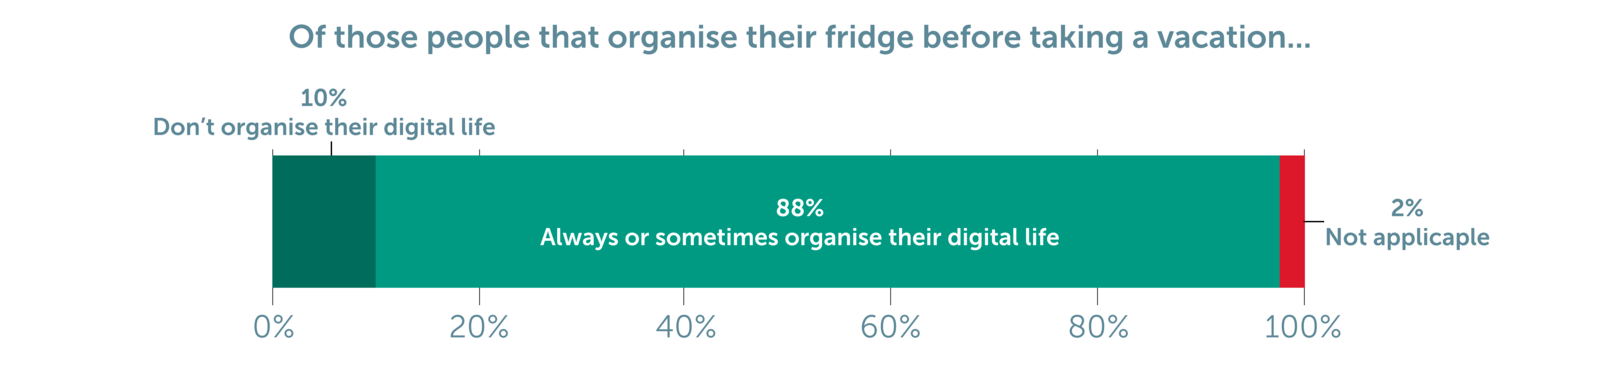 Figure 5: Before leaving the house for a long time, e.g. going on a vacation, do you usually empty/ your fridge/check best before dates of products there and organize your files/emails at work before taking holiday from work? (Chart 23)